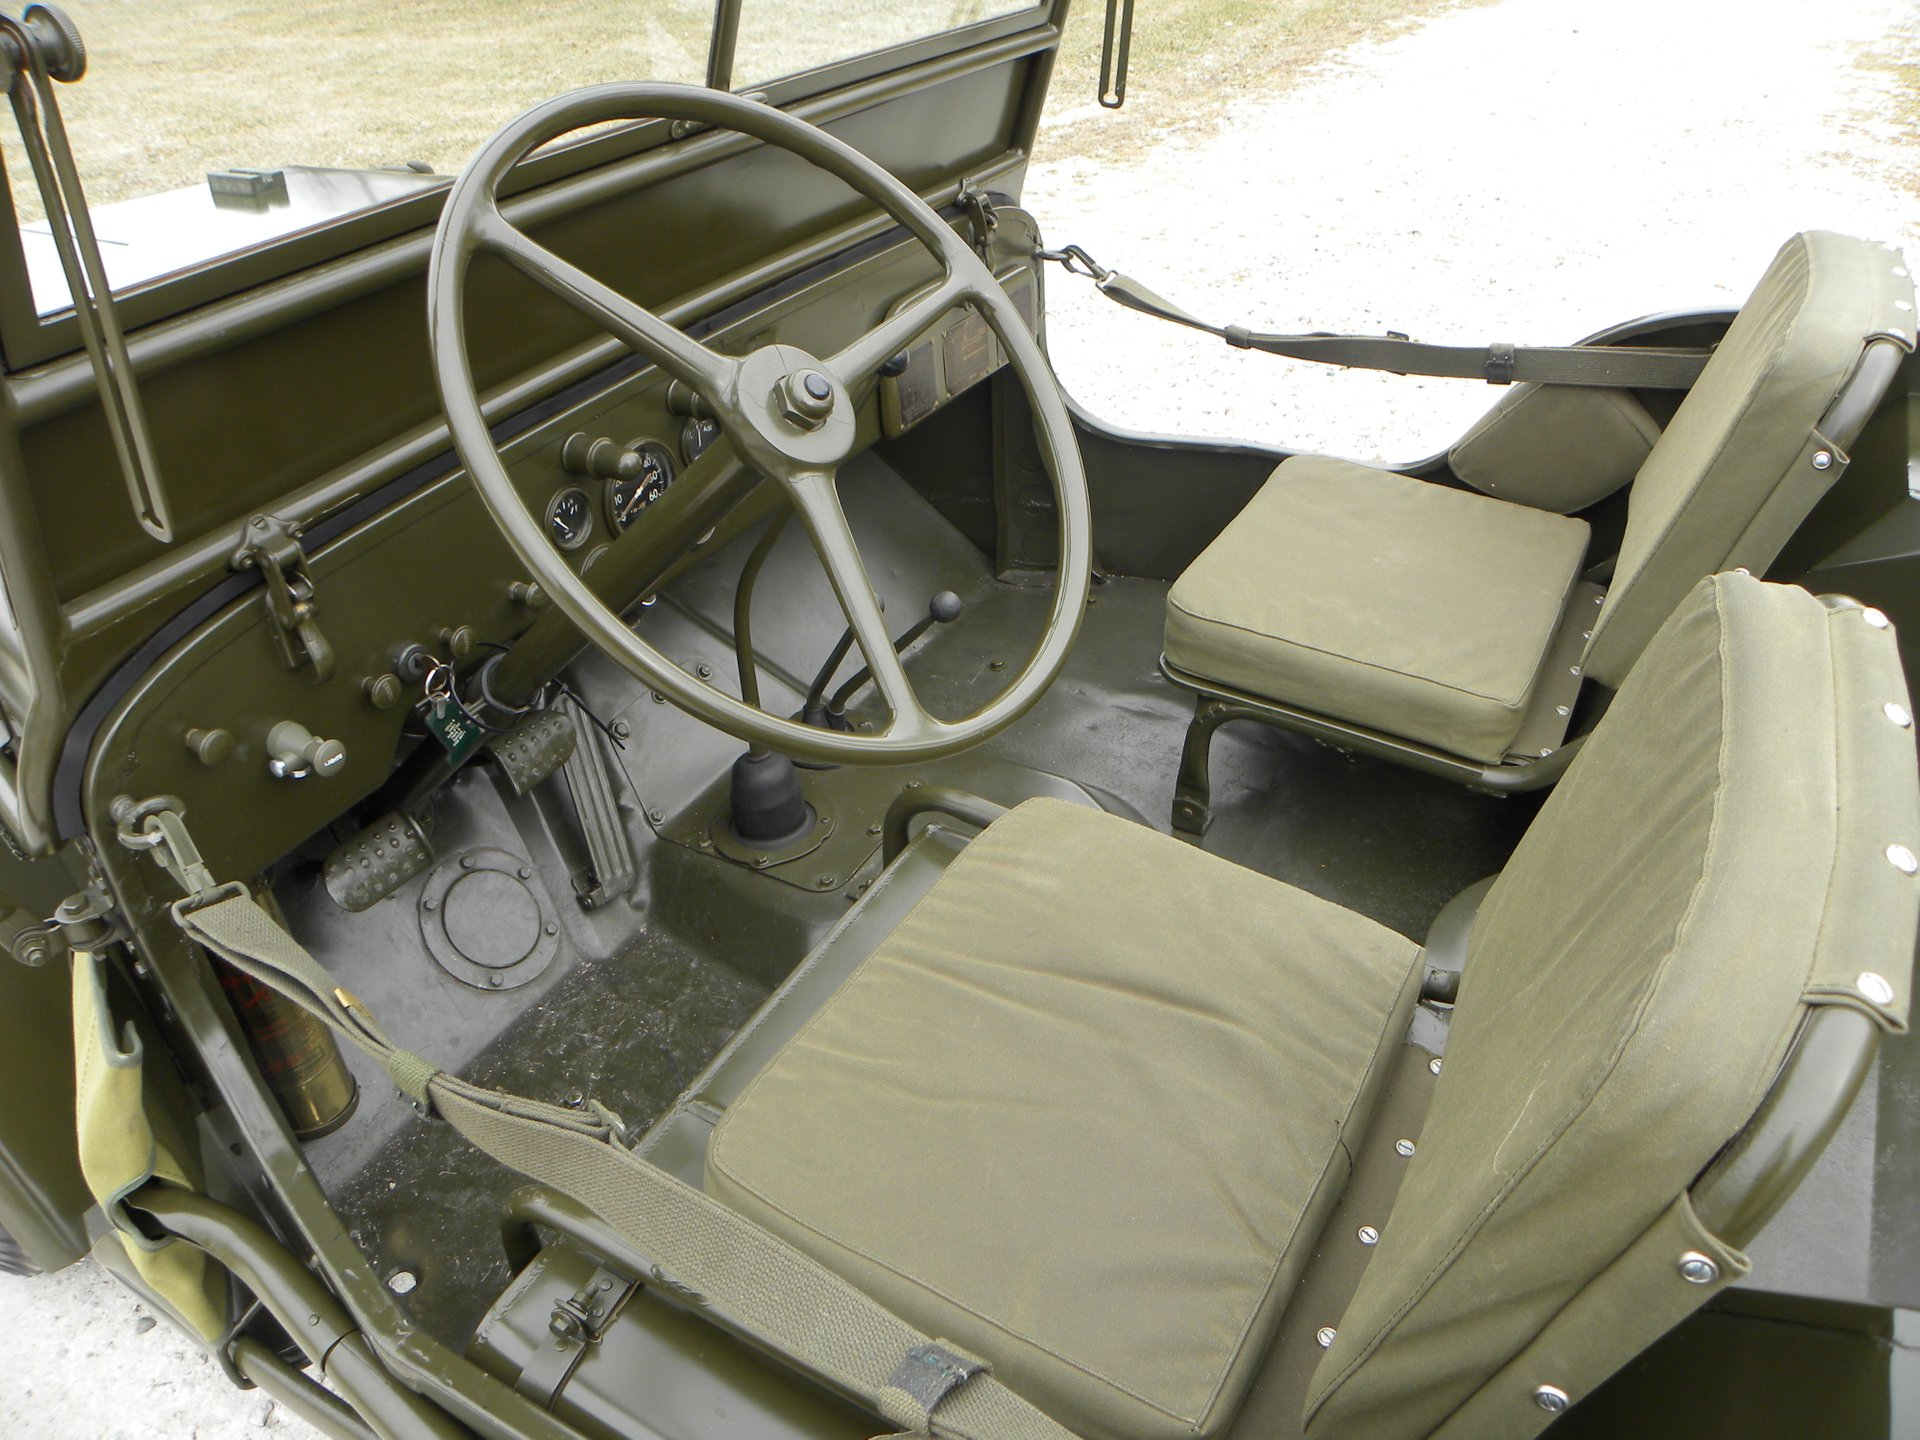 1942 Ford GPW Jeep US Army Issue for sale #83136   MCG